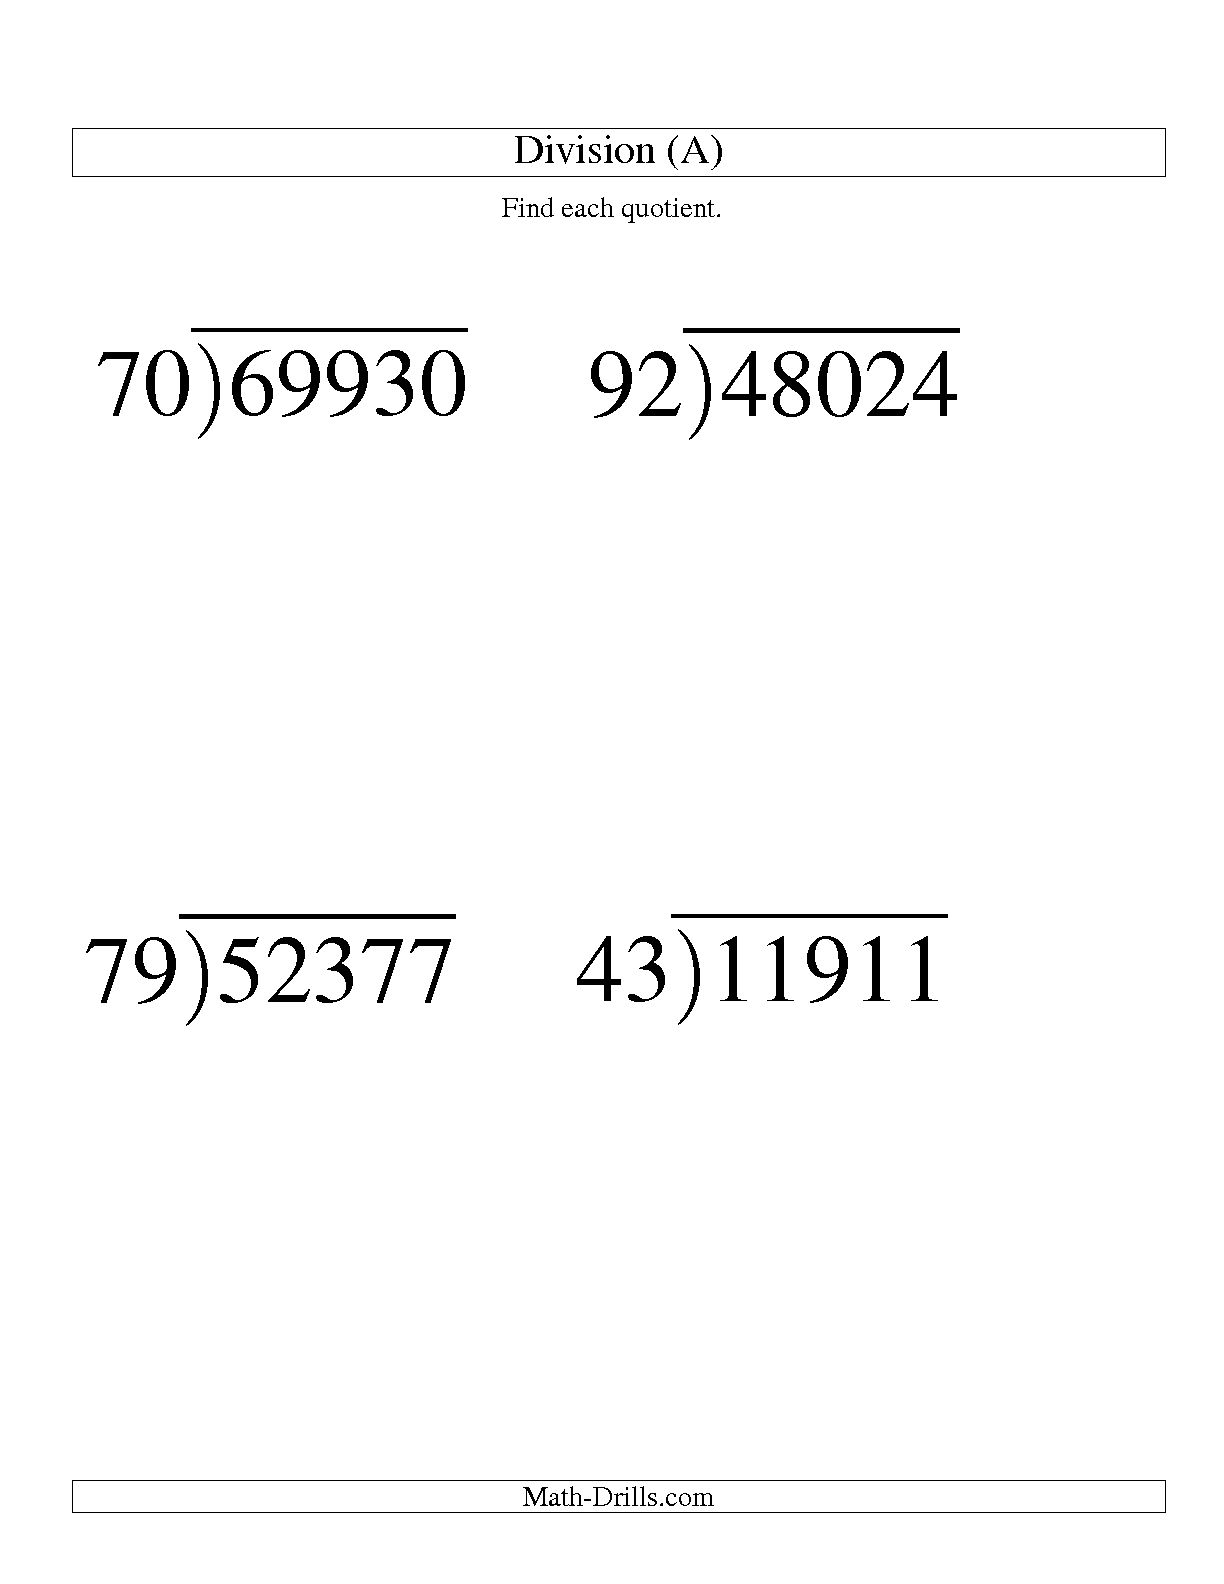 Division Worksheet 3 Digit By 2 Digit